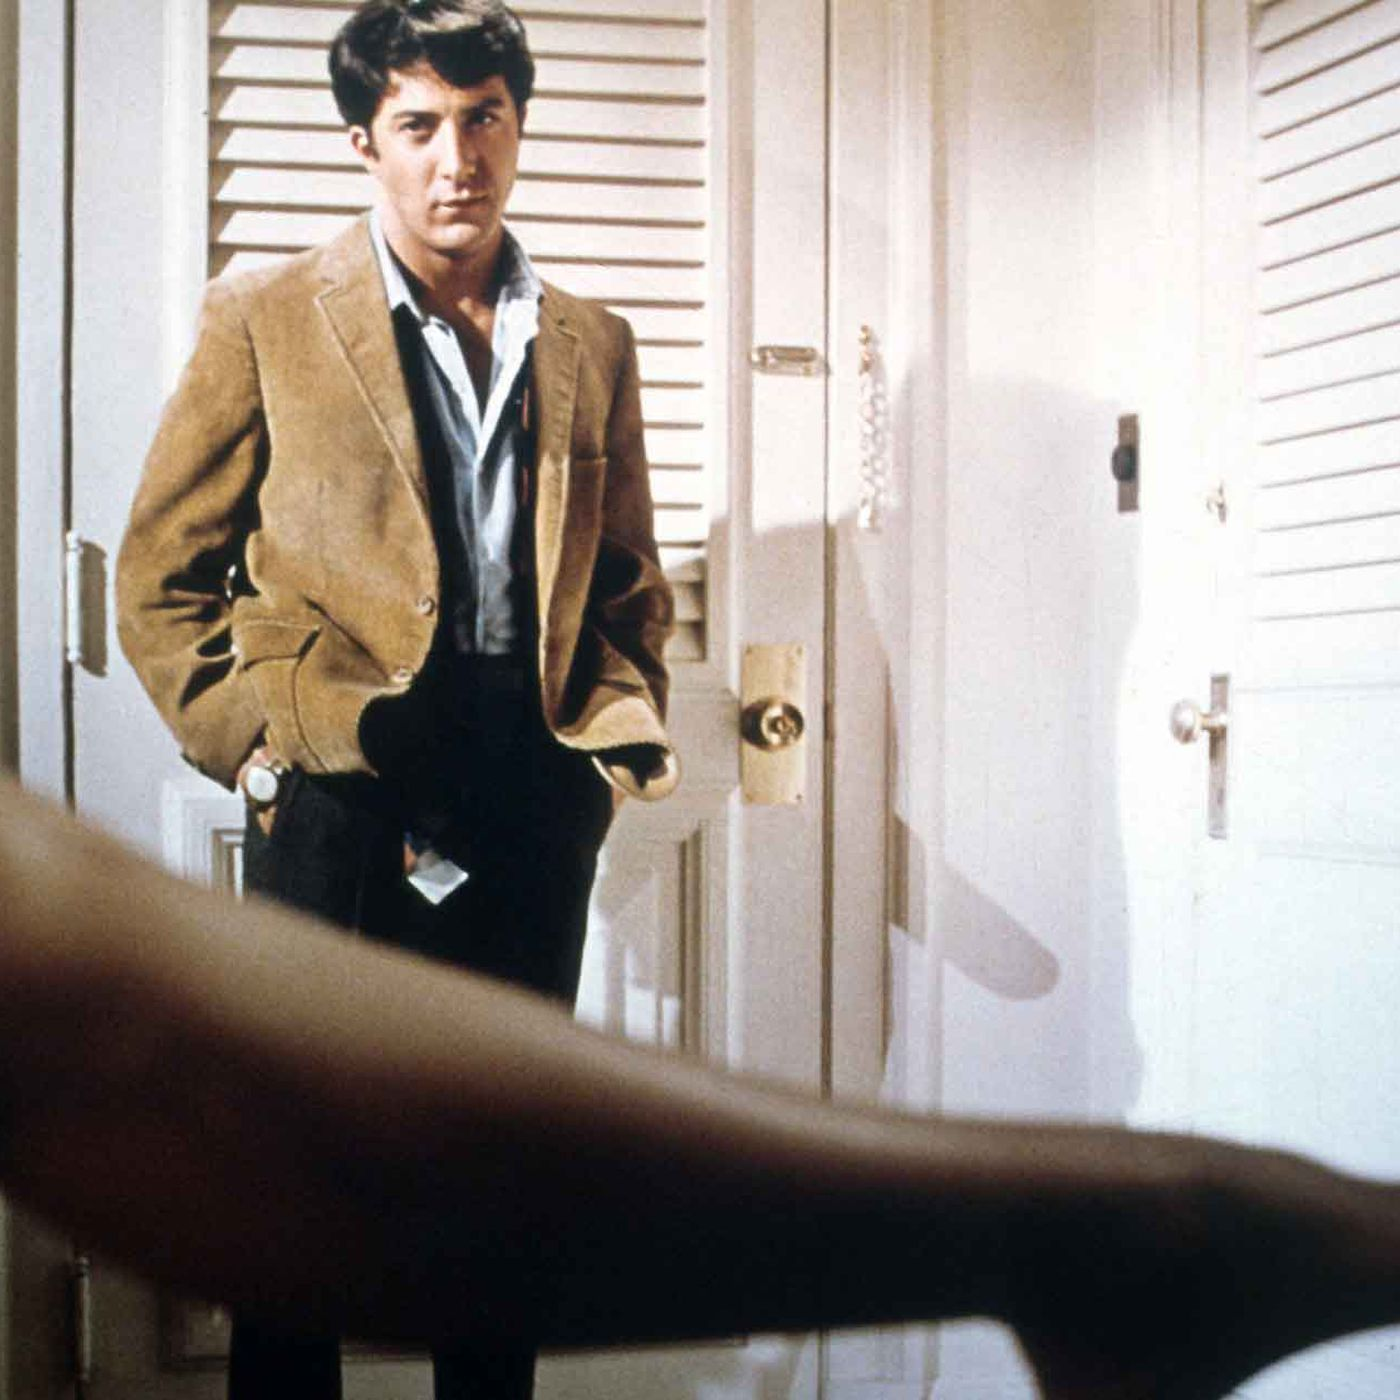 At 50, The Graduate holds up. Its central character doesn't fare quite as  well. - Vox